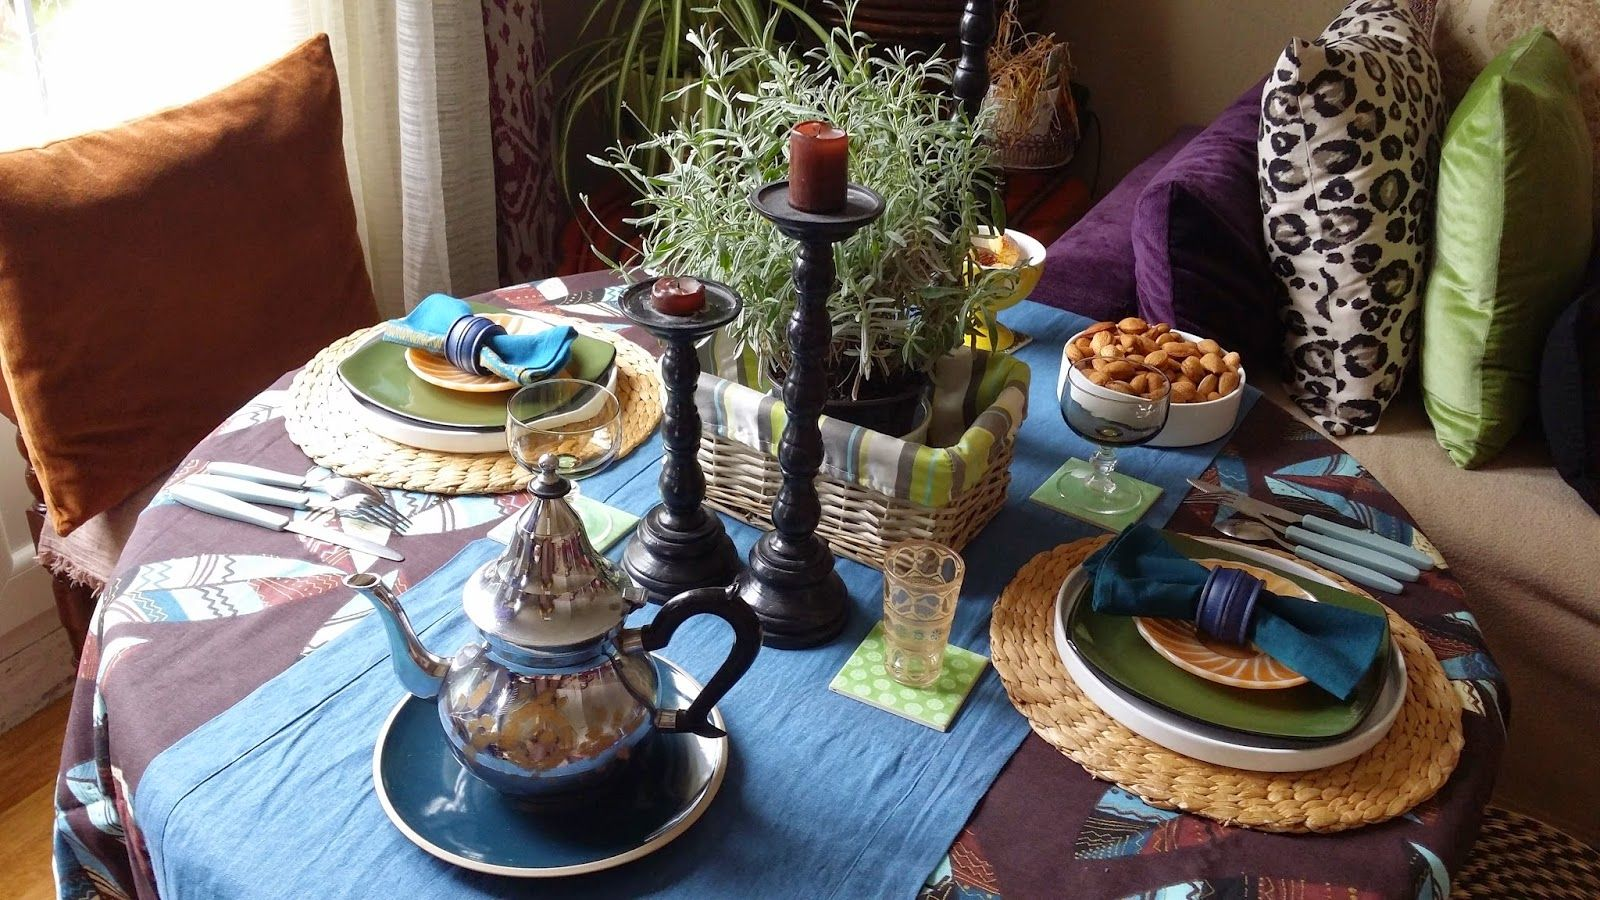 BOHEMIAN LIVING AND OTHER THINGS